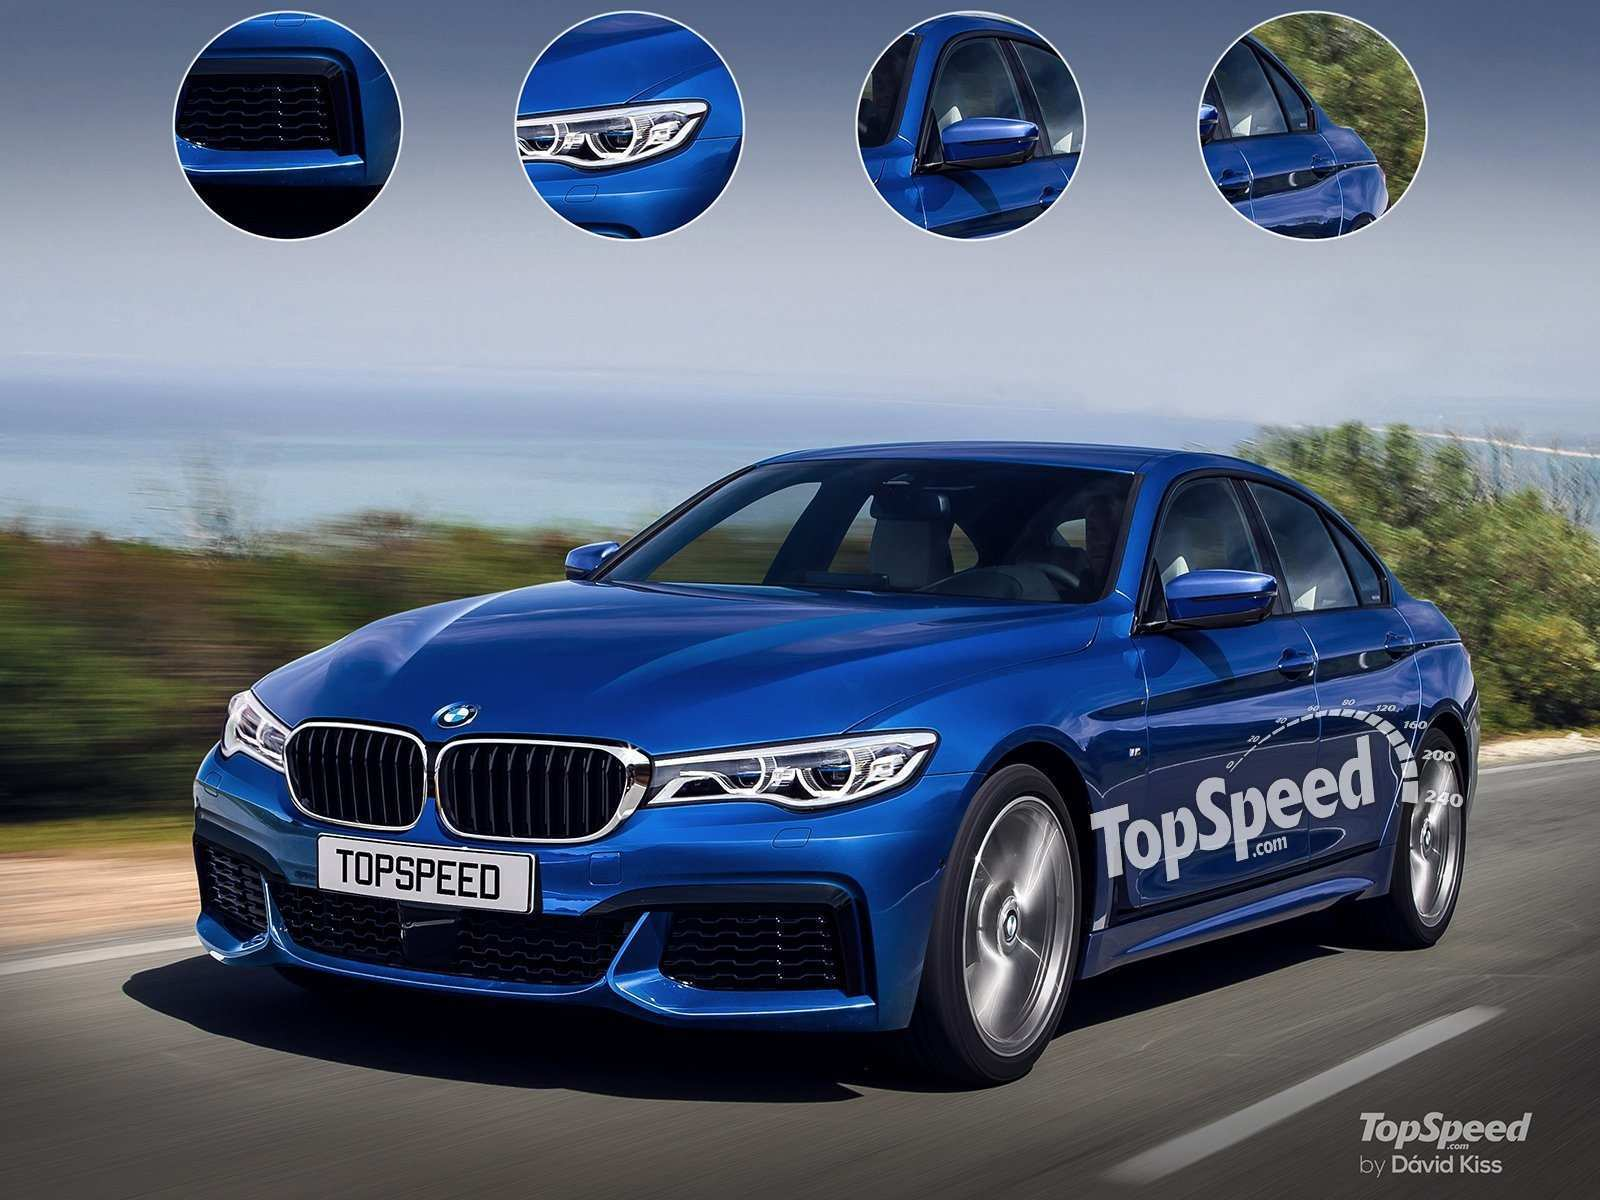 53 Concept of 2019 Bmw Limited Style for 2019 Bmw Limited